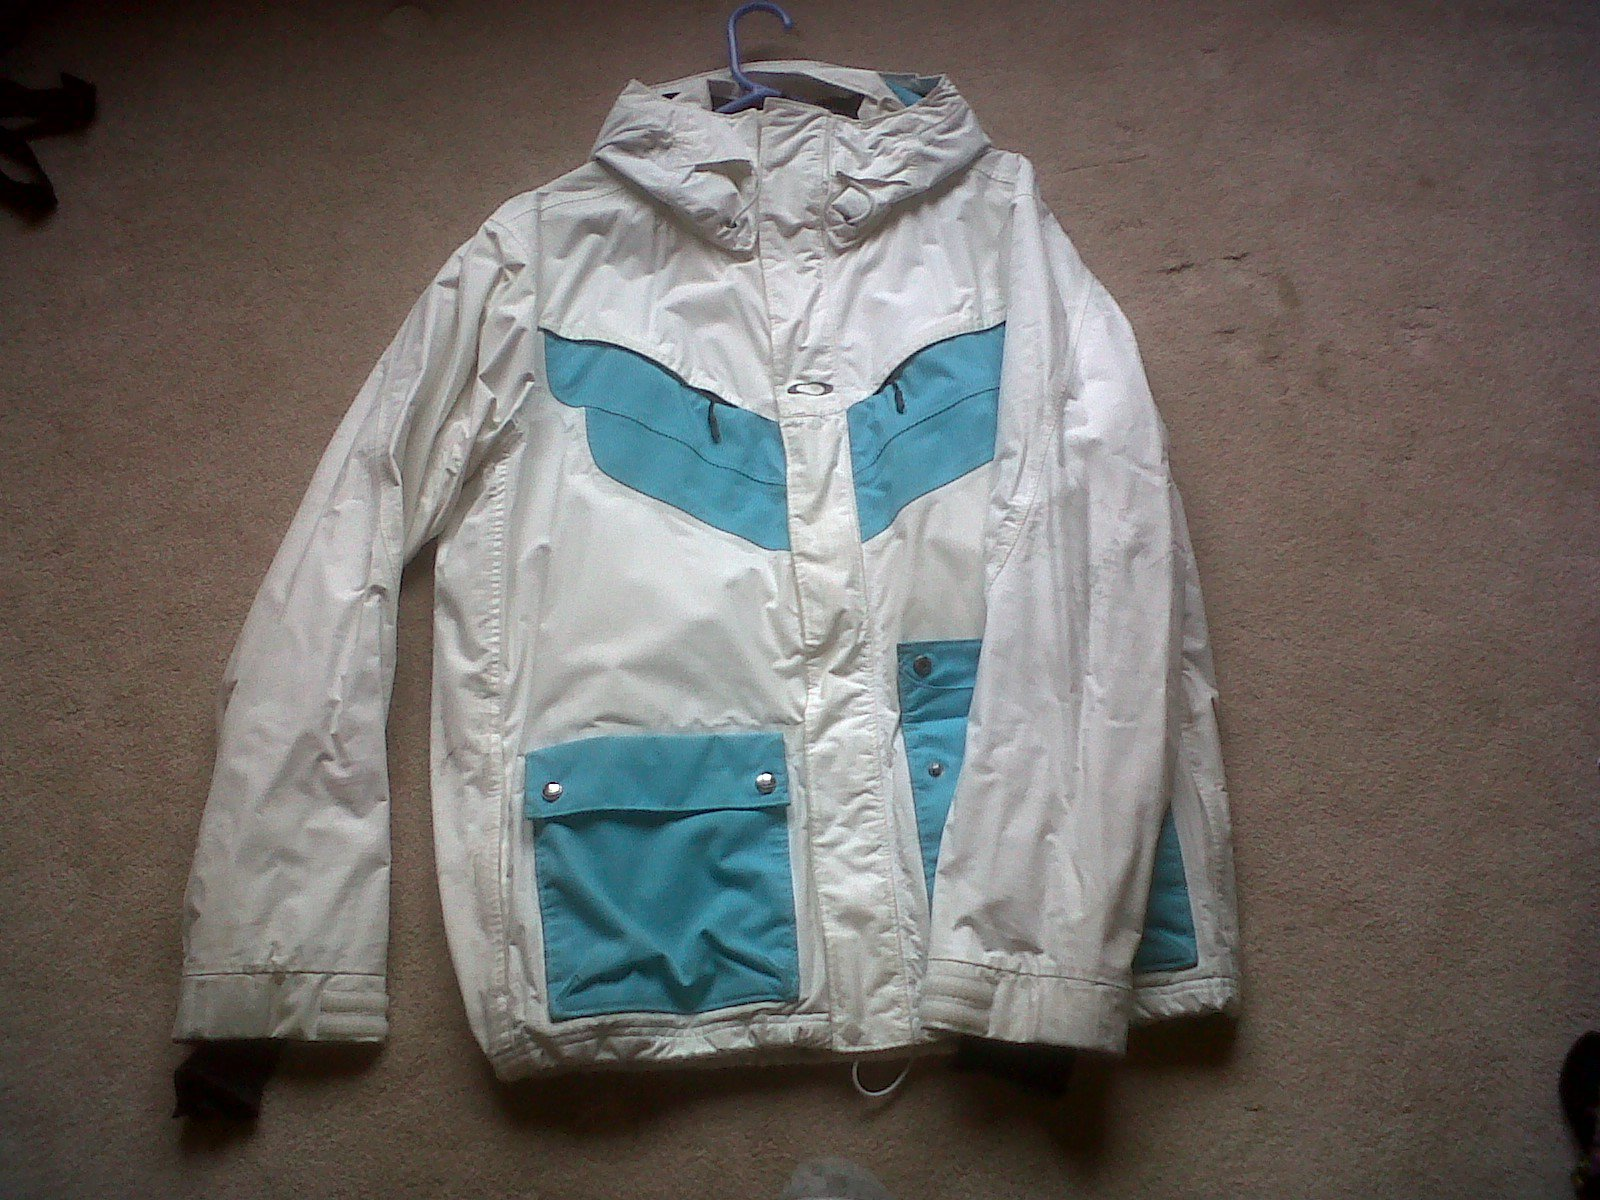 Oakley jacket for sale , check thread